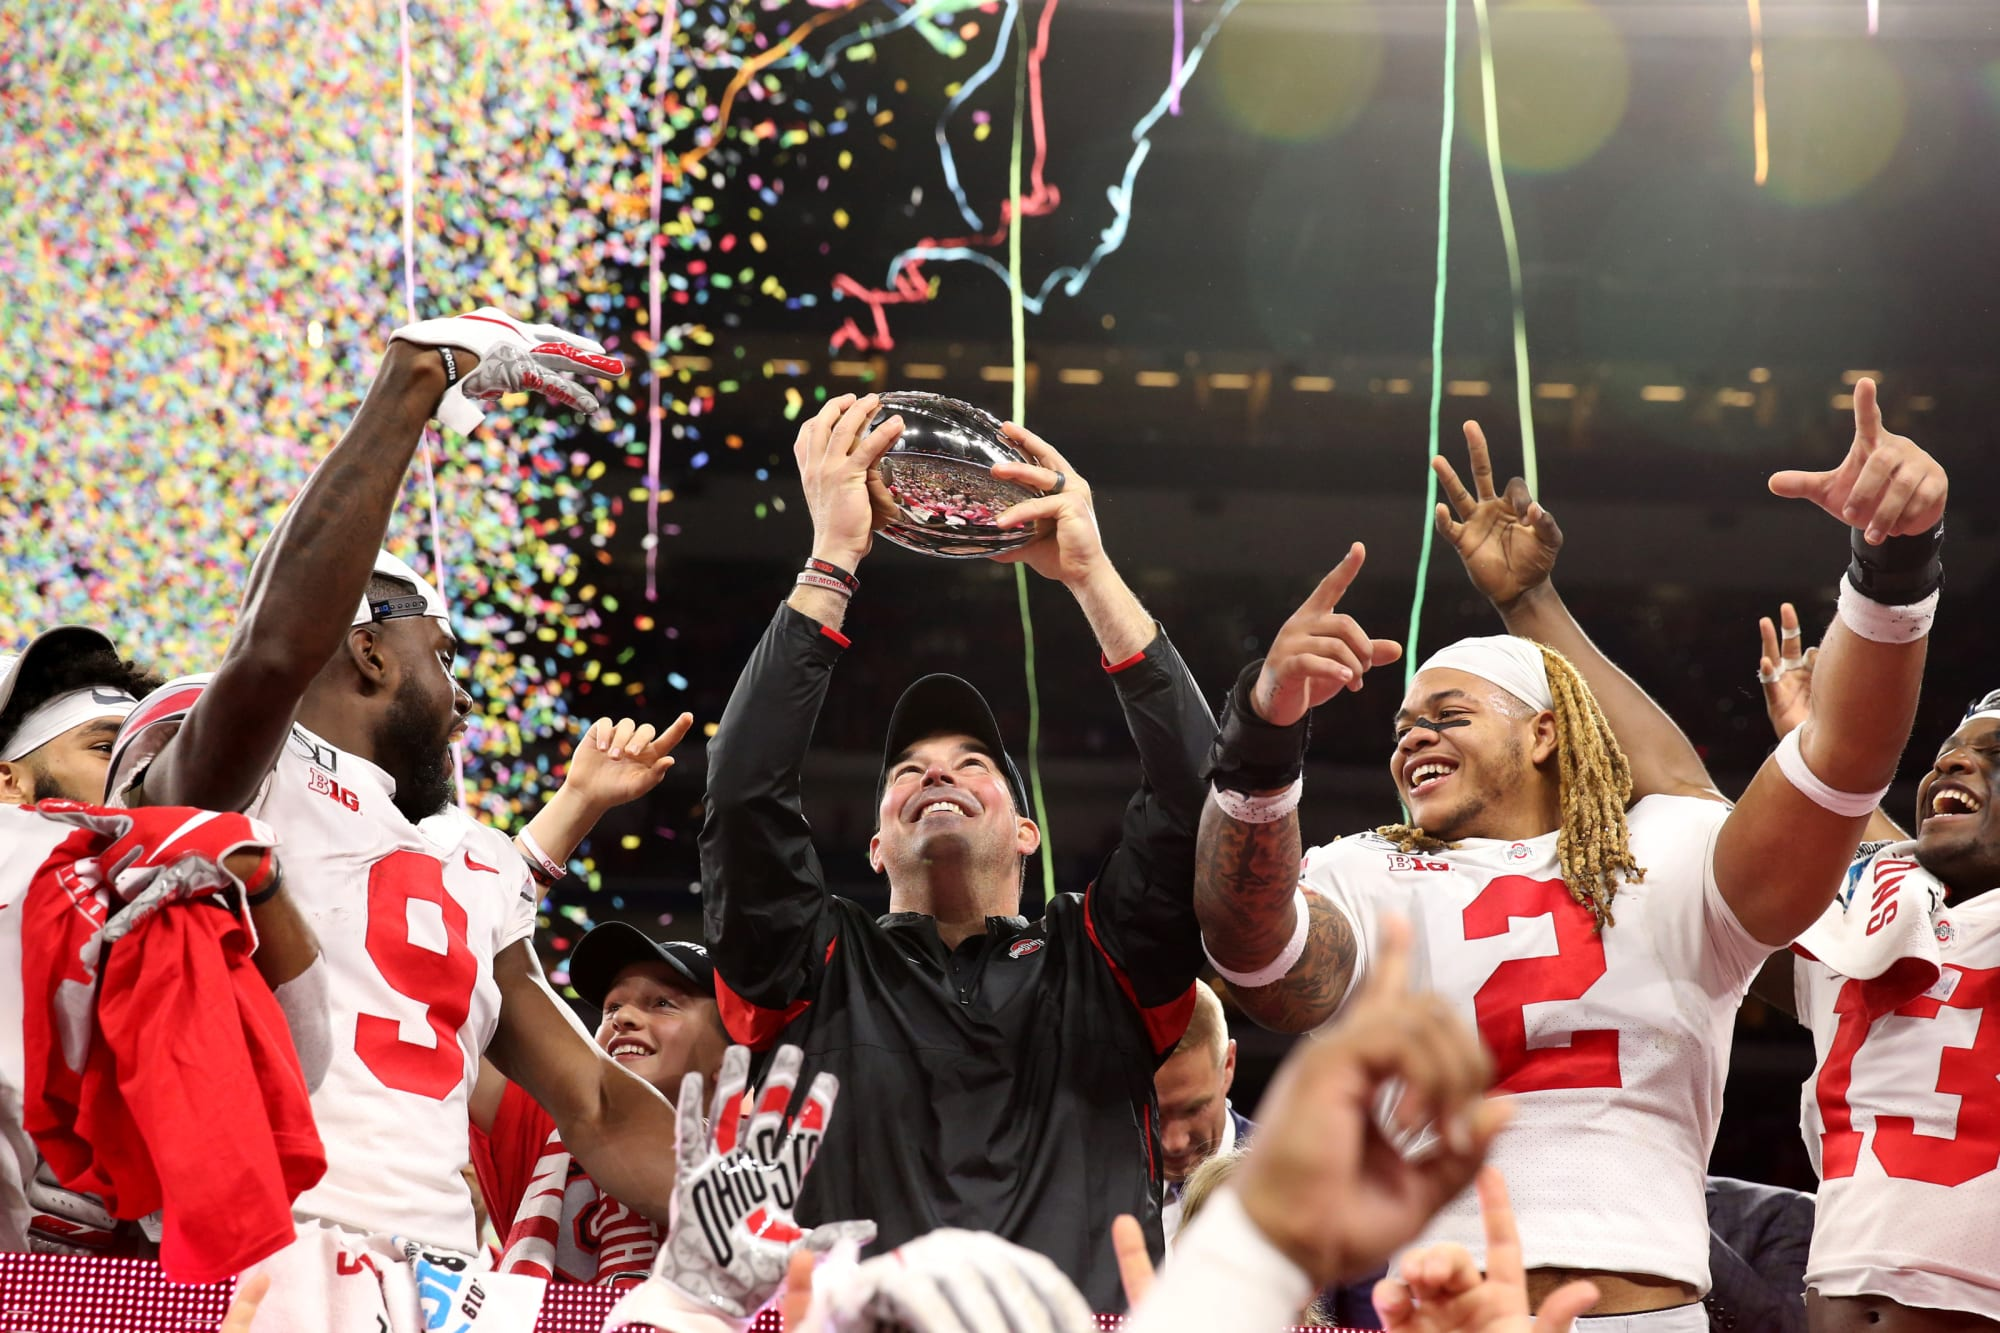 Ohio State football broke the Big Ten